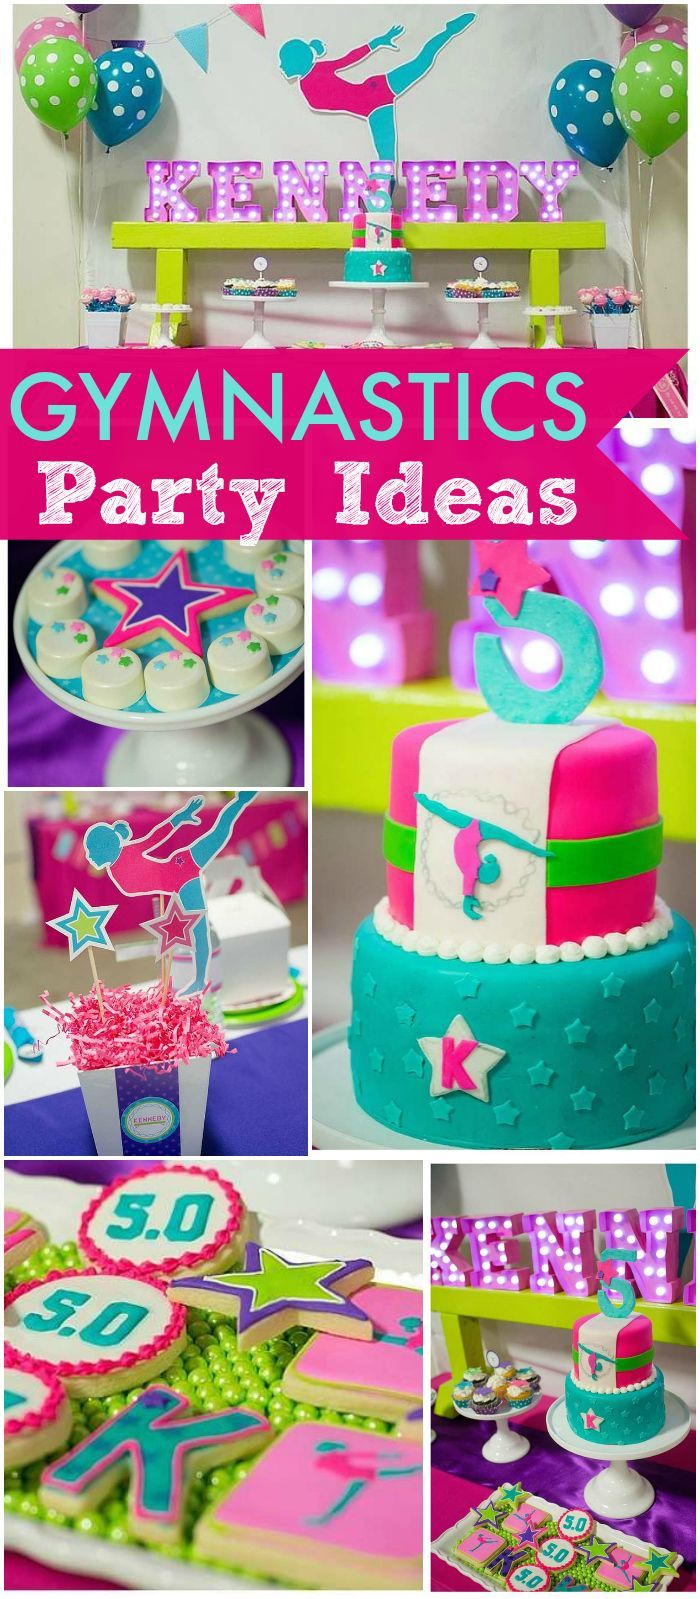 Awesome gymnastics party!  #kids #kidsparty #kidspartyideas